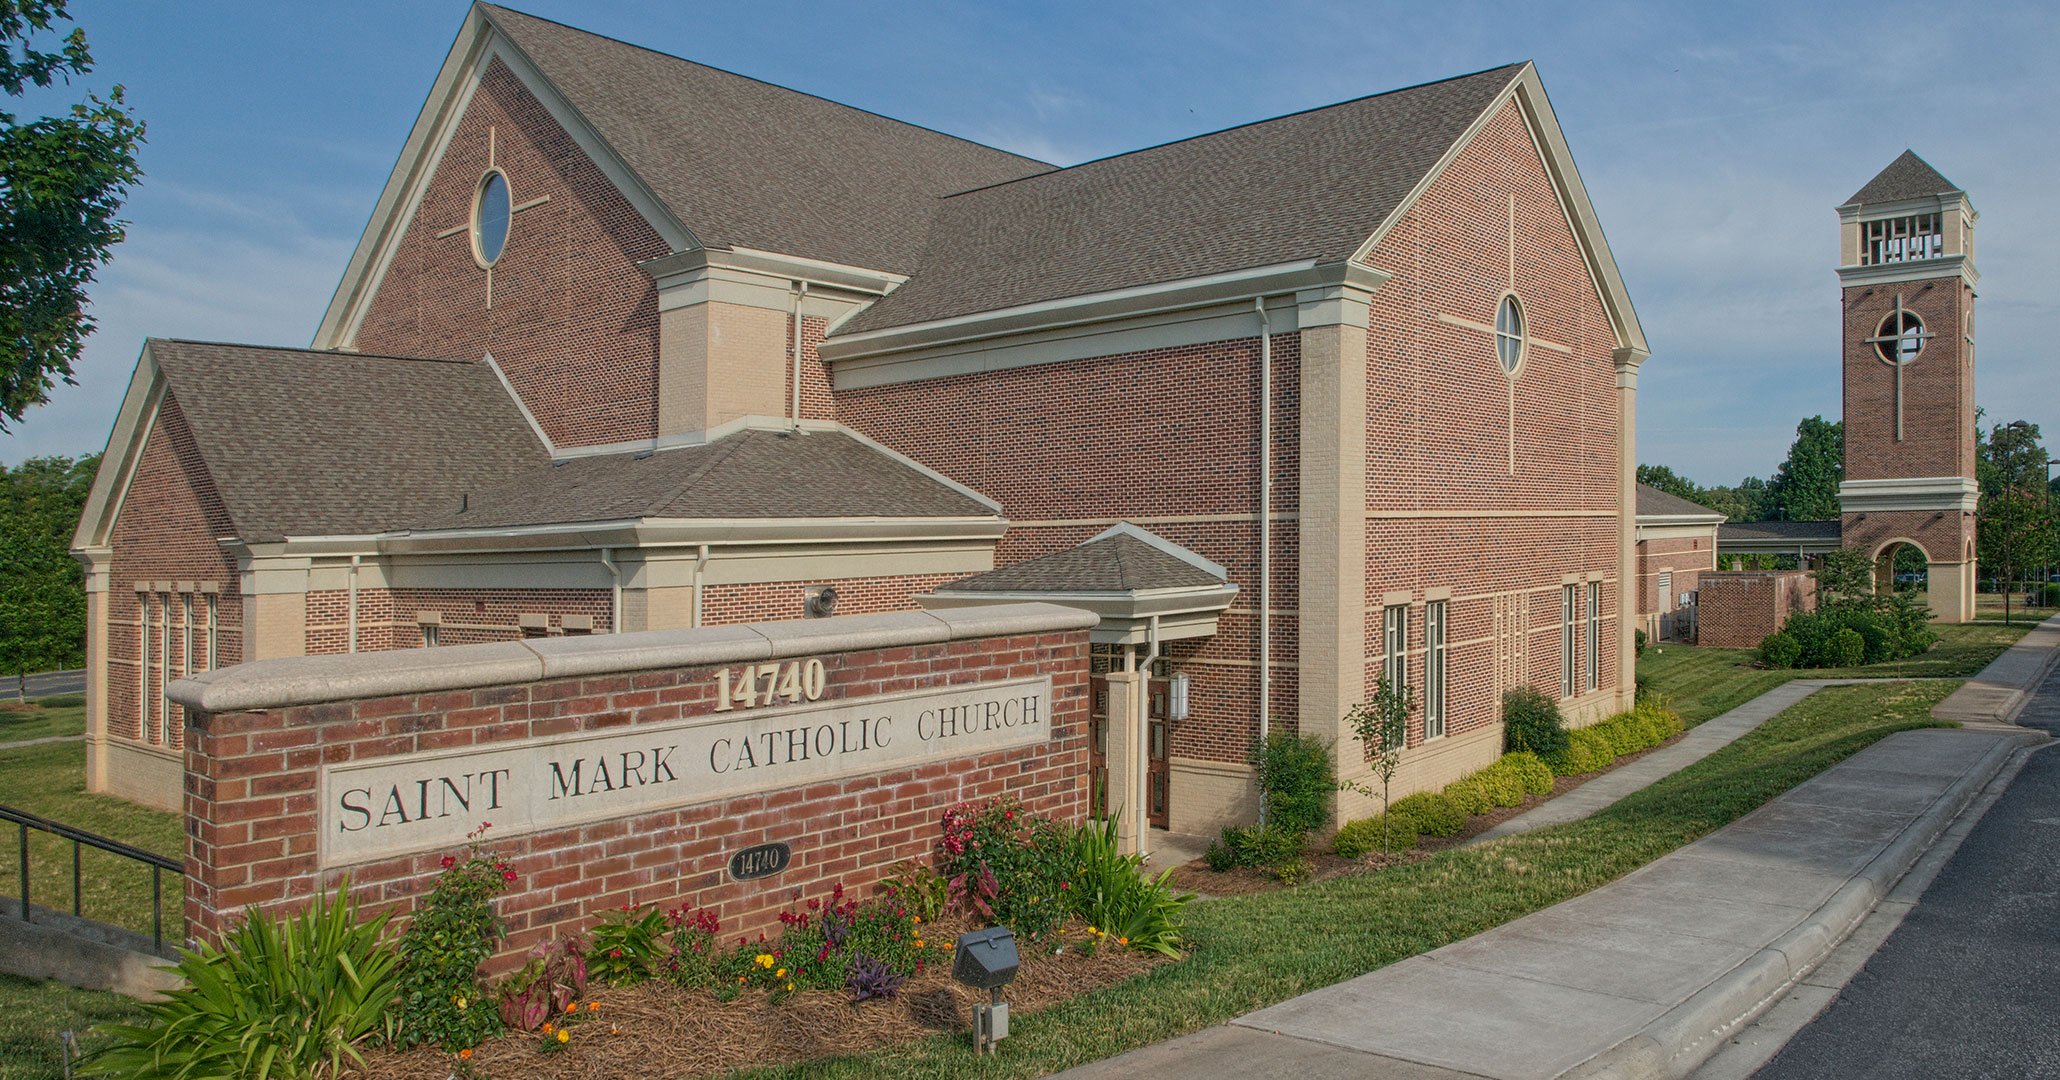 Boudreaux architects worked with St. Mark Catholic Church to design a new church sanctuary.